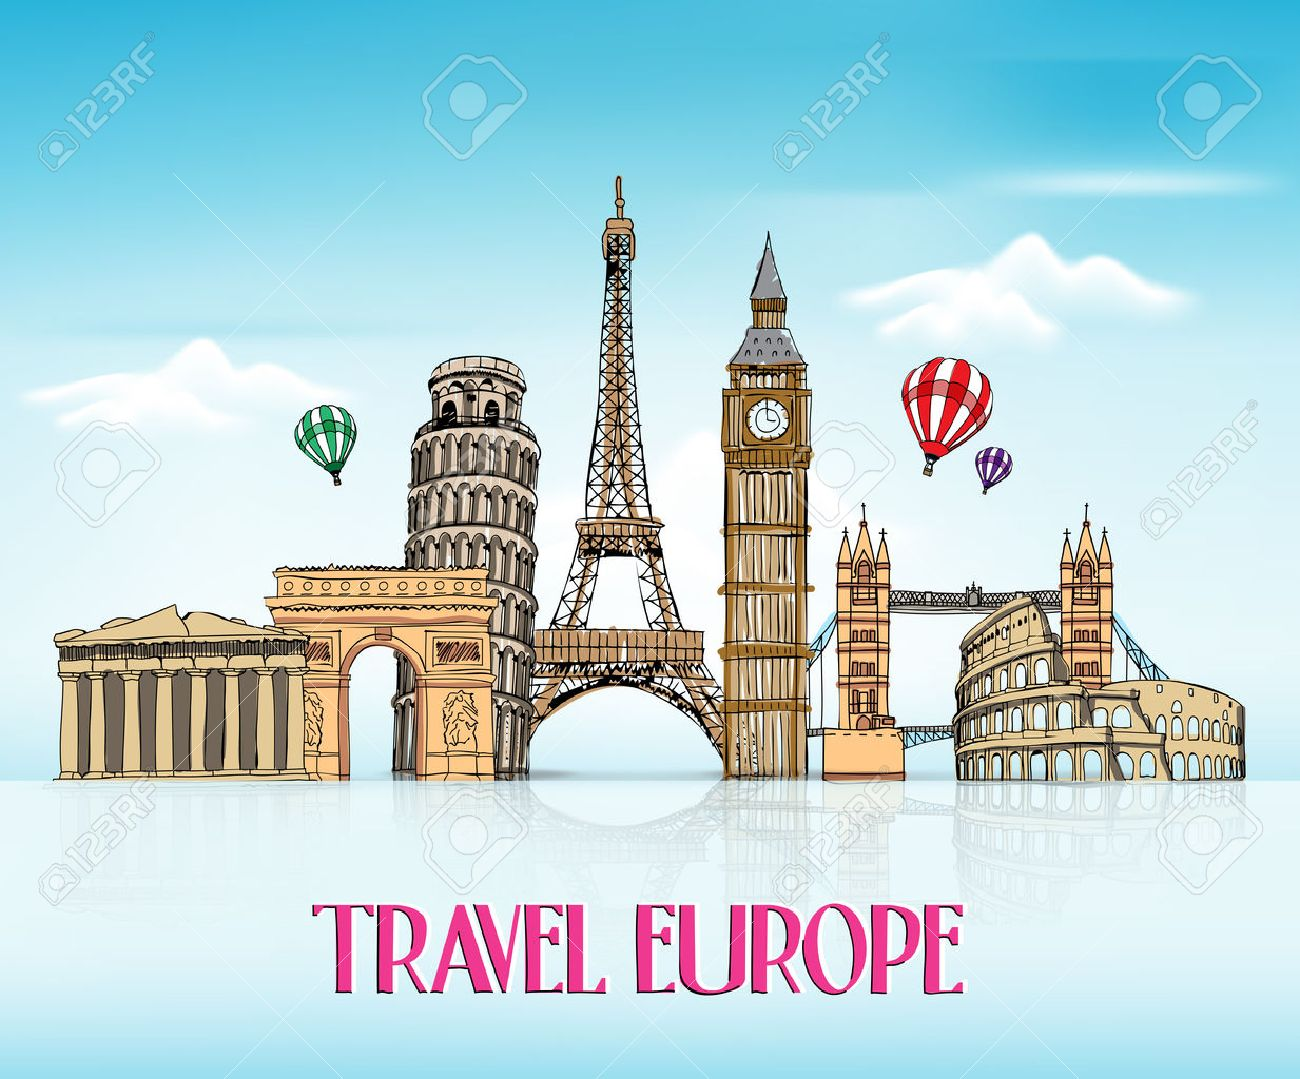 Travel Europe Hand Drawing with Famous Landmarks and Places in Blue Background with Reflection. Vector Illustration - 48820353